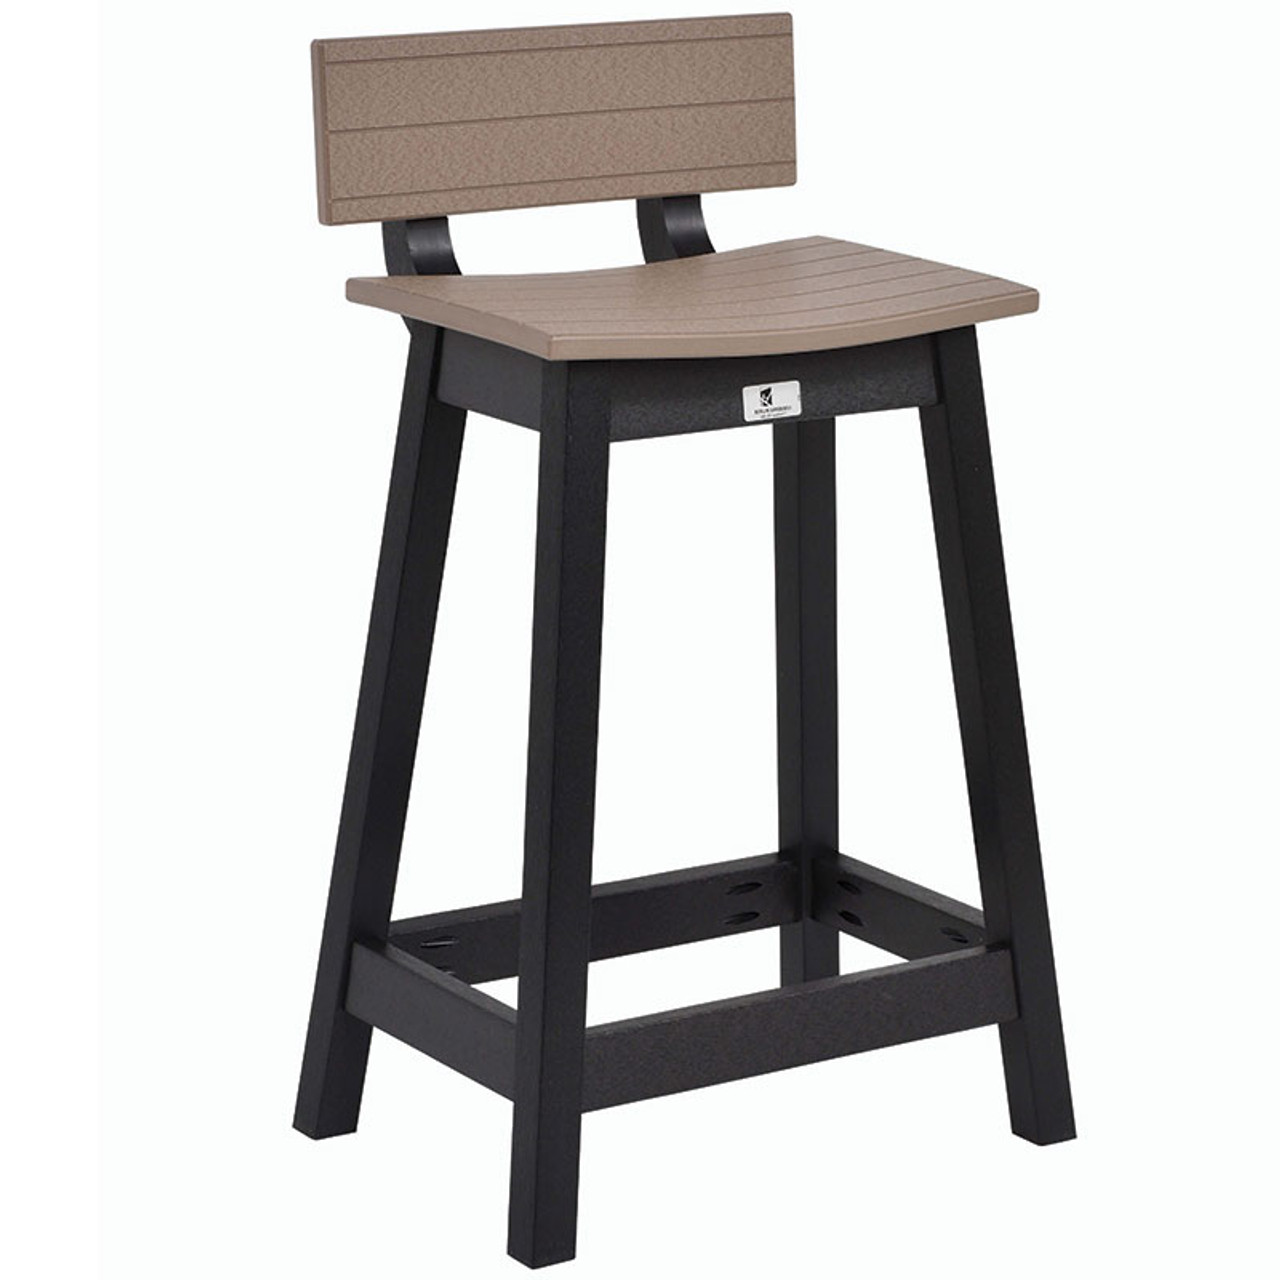 Marvelous Saddle Bar Stool Kauffman Lawn Furniture Andrewgaddart Wooden Chair Designs For Living Room Andrewgaddartcom